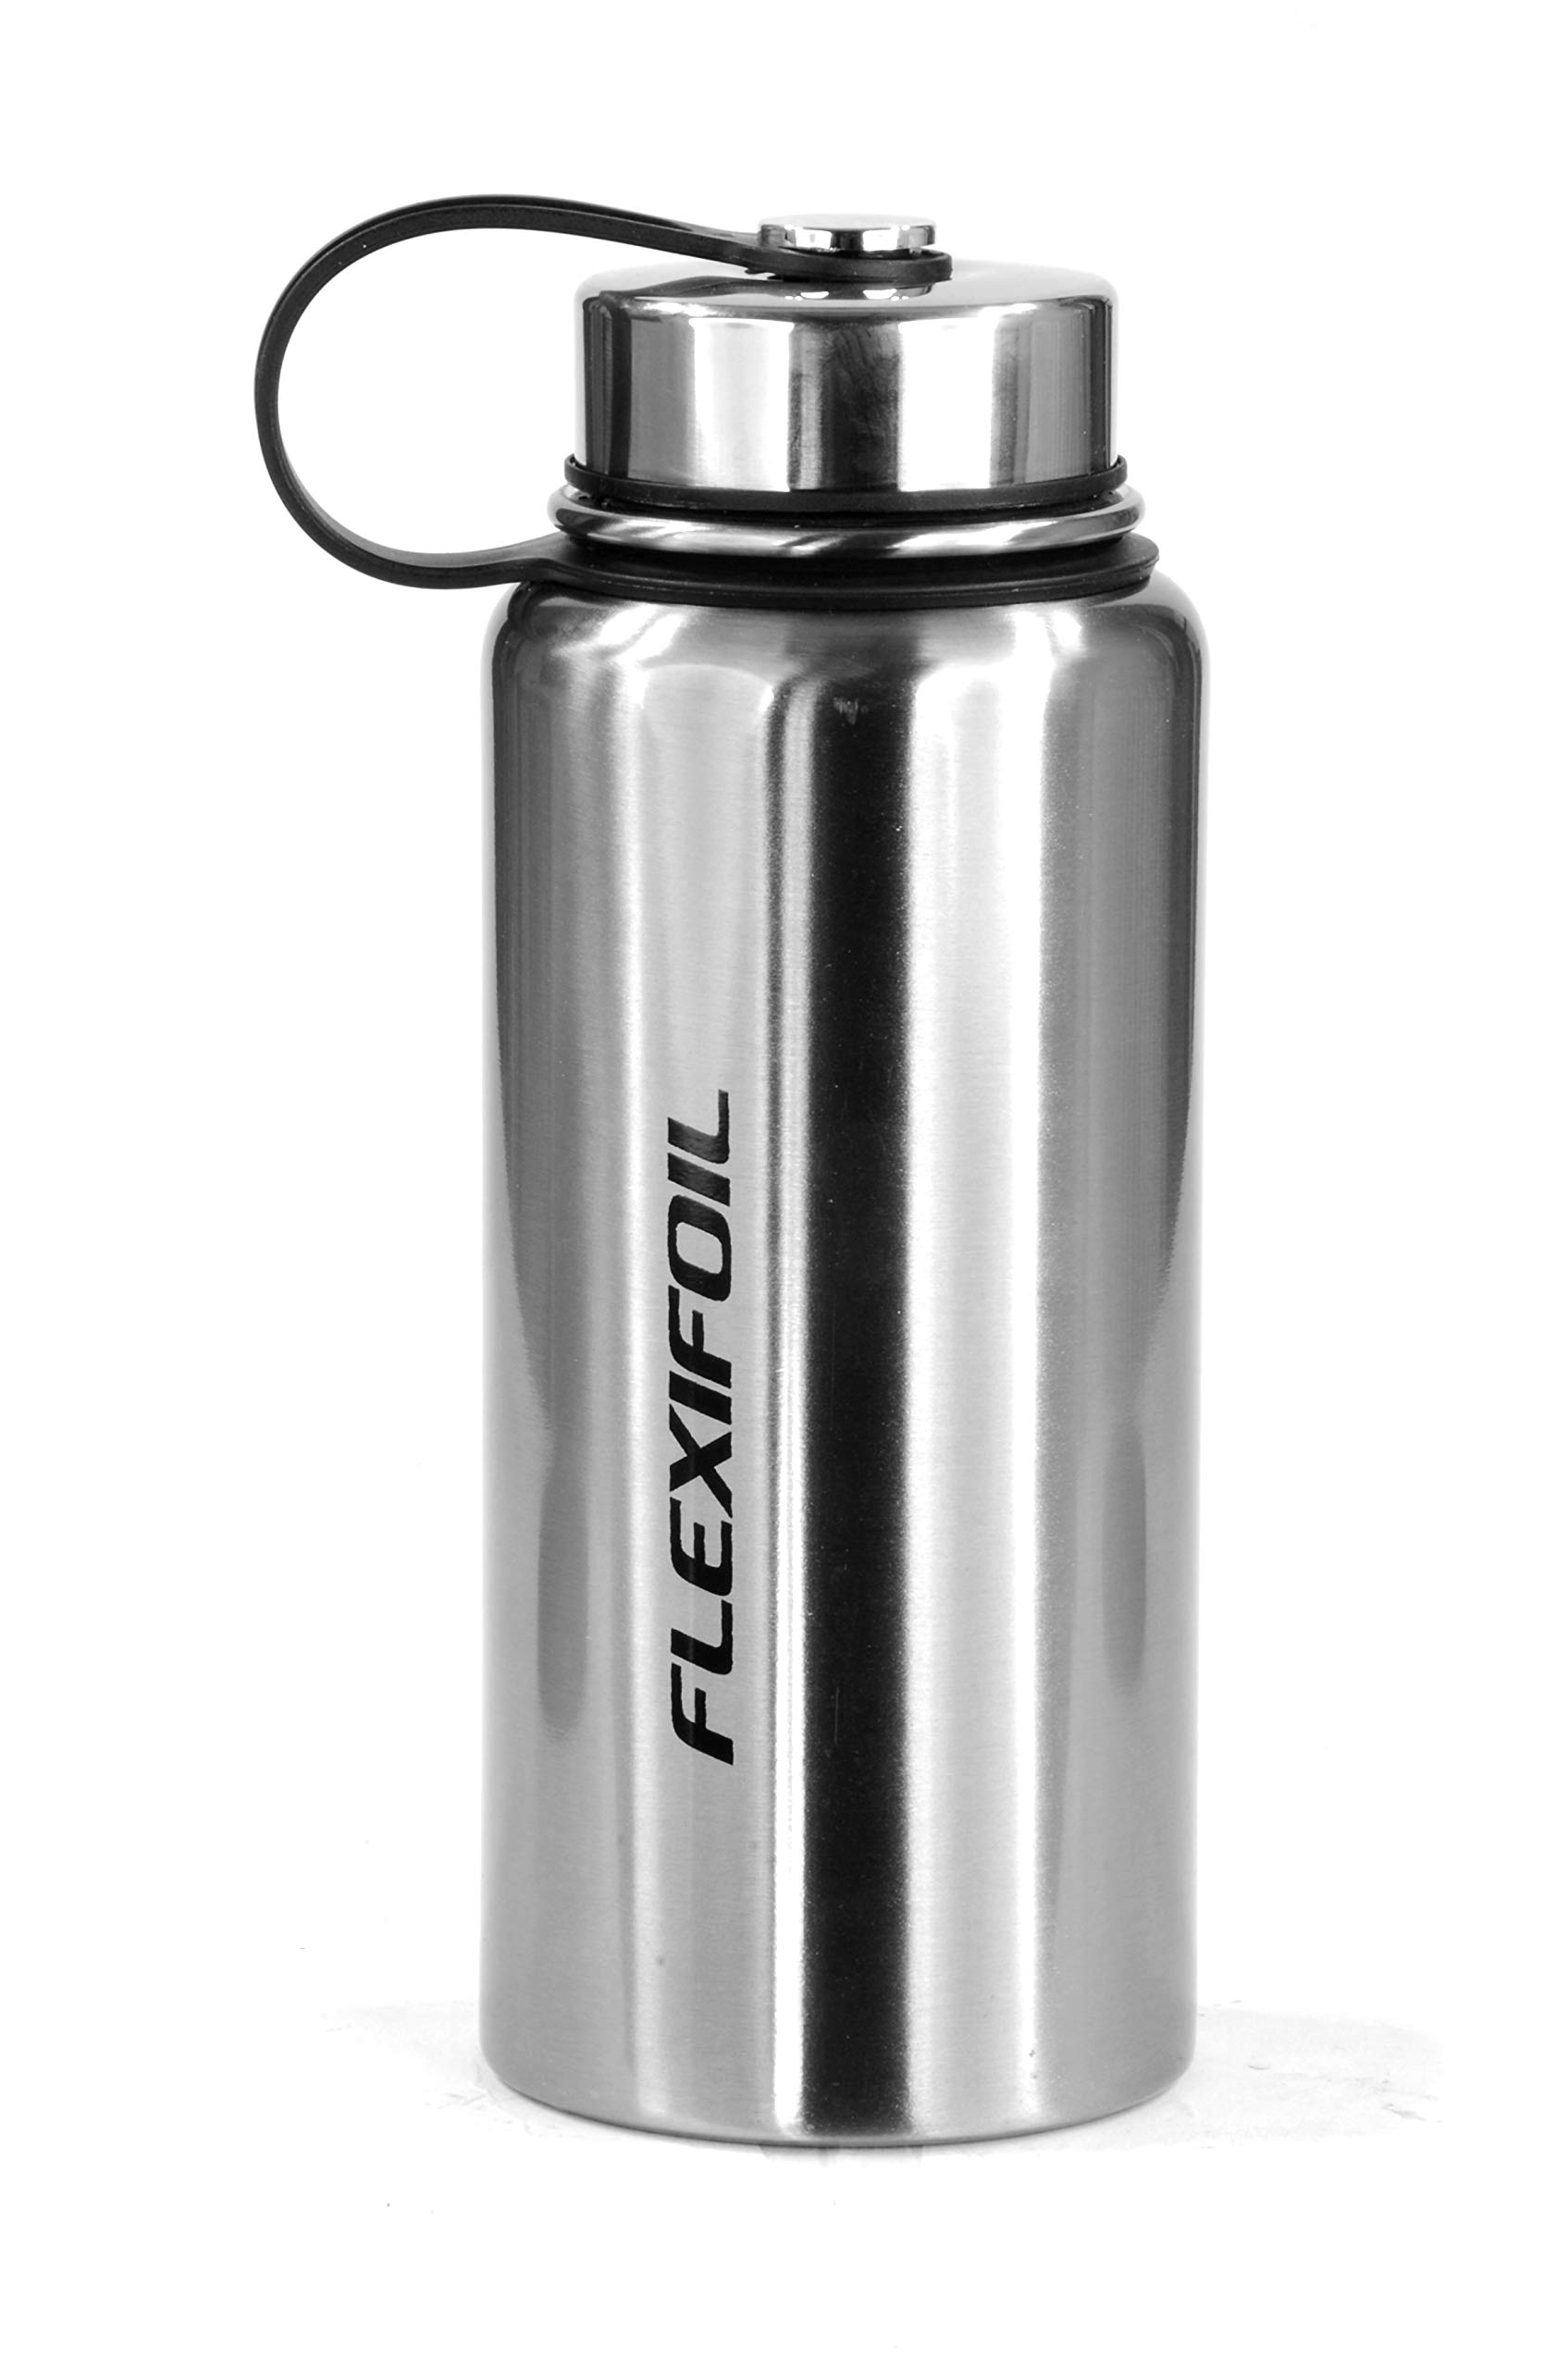 Flexifoil Thermos Flask - Best 800ml Vacuum Thermal for Coffee Tea and Water Drinking - Travel and Camping - Perfect Choice of Thermoses inc. Bottle Stopper 1